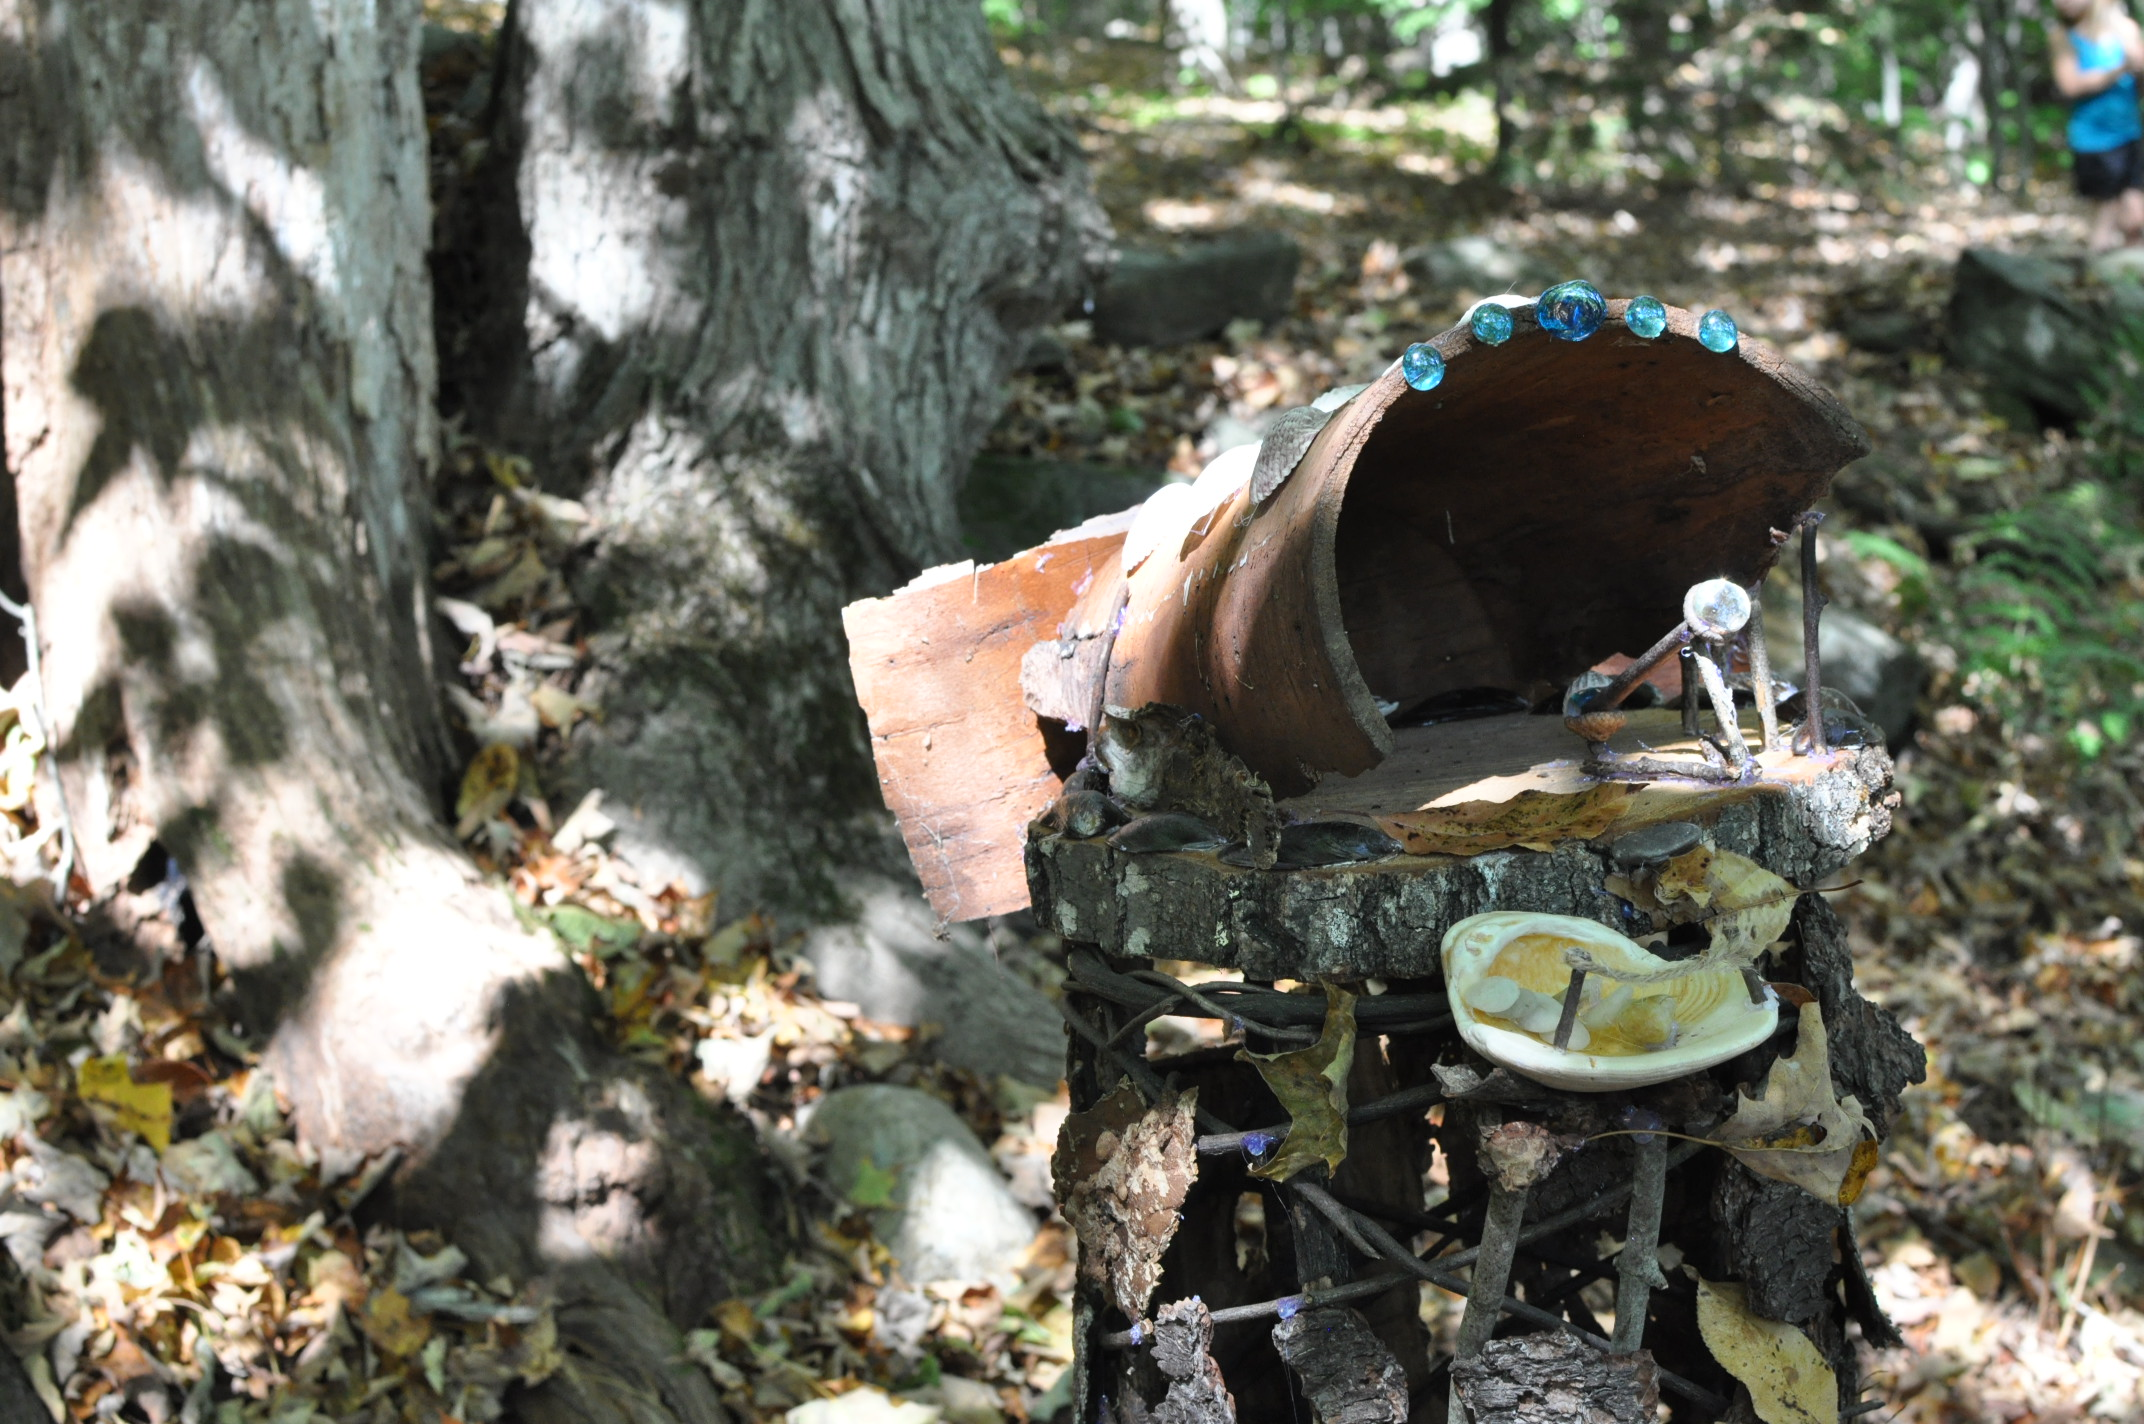 Fairy House by Delaney and Willem Bargfrede -